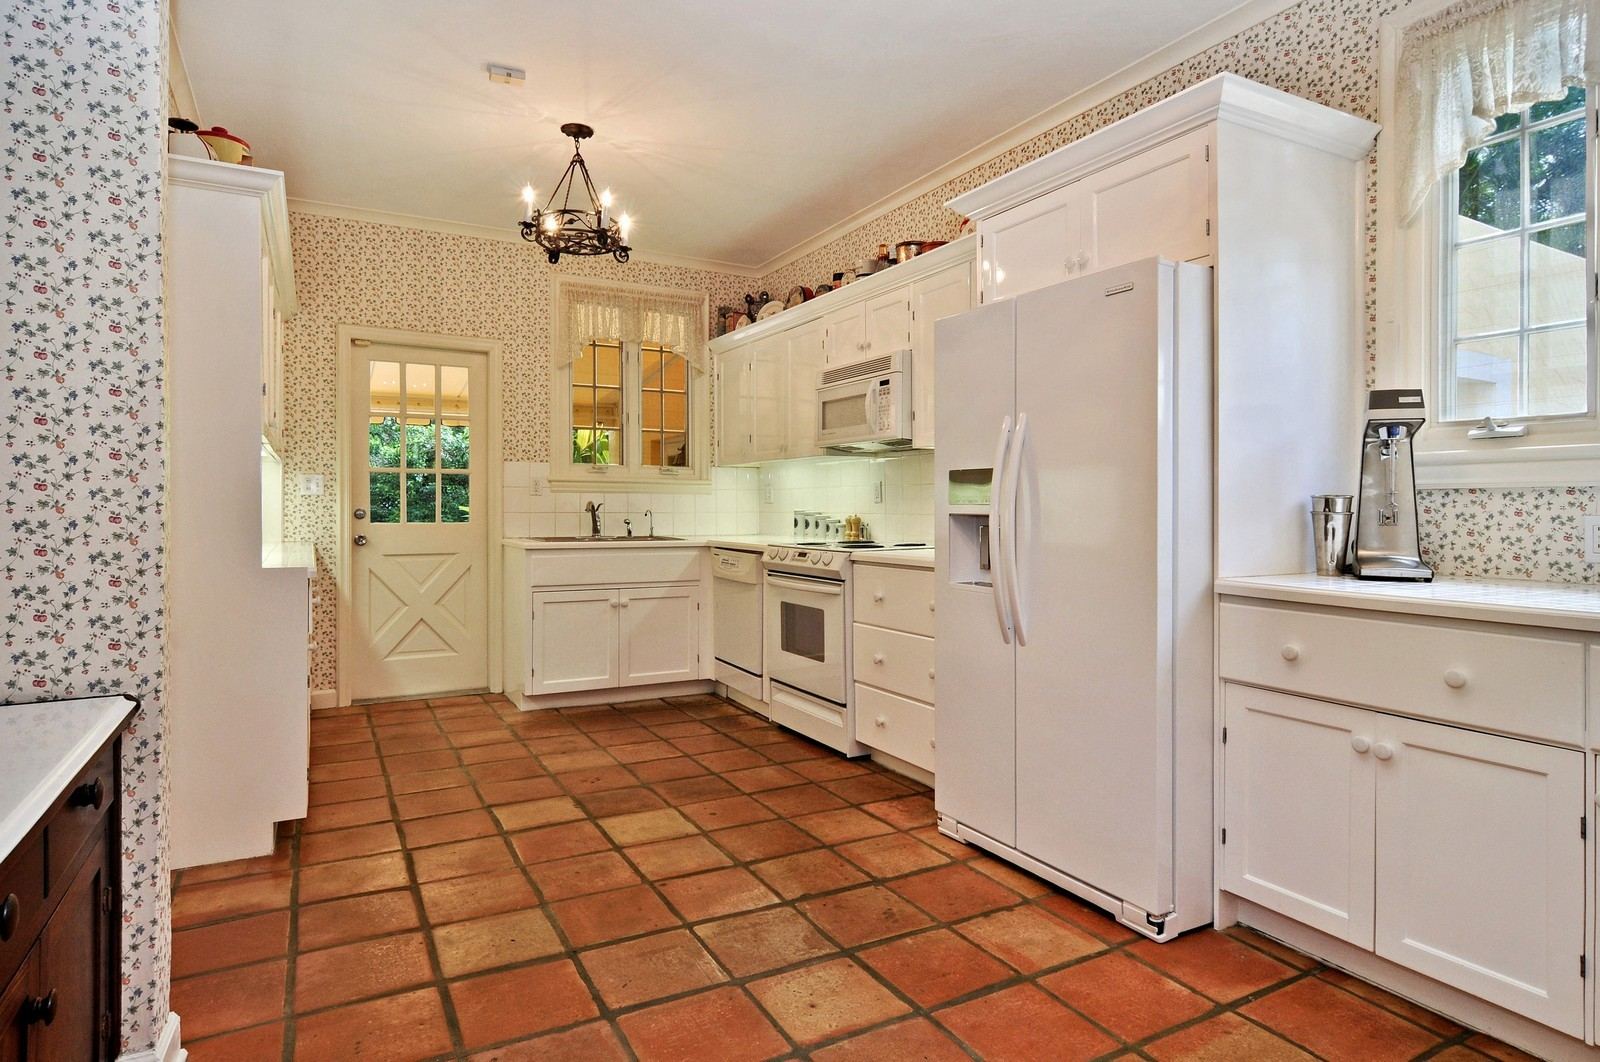 Real Estate Photography - 716 Alhambra Circle, Coral Gables, FL, 33134 - Kitchen